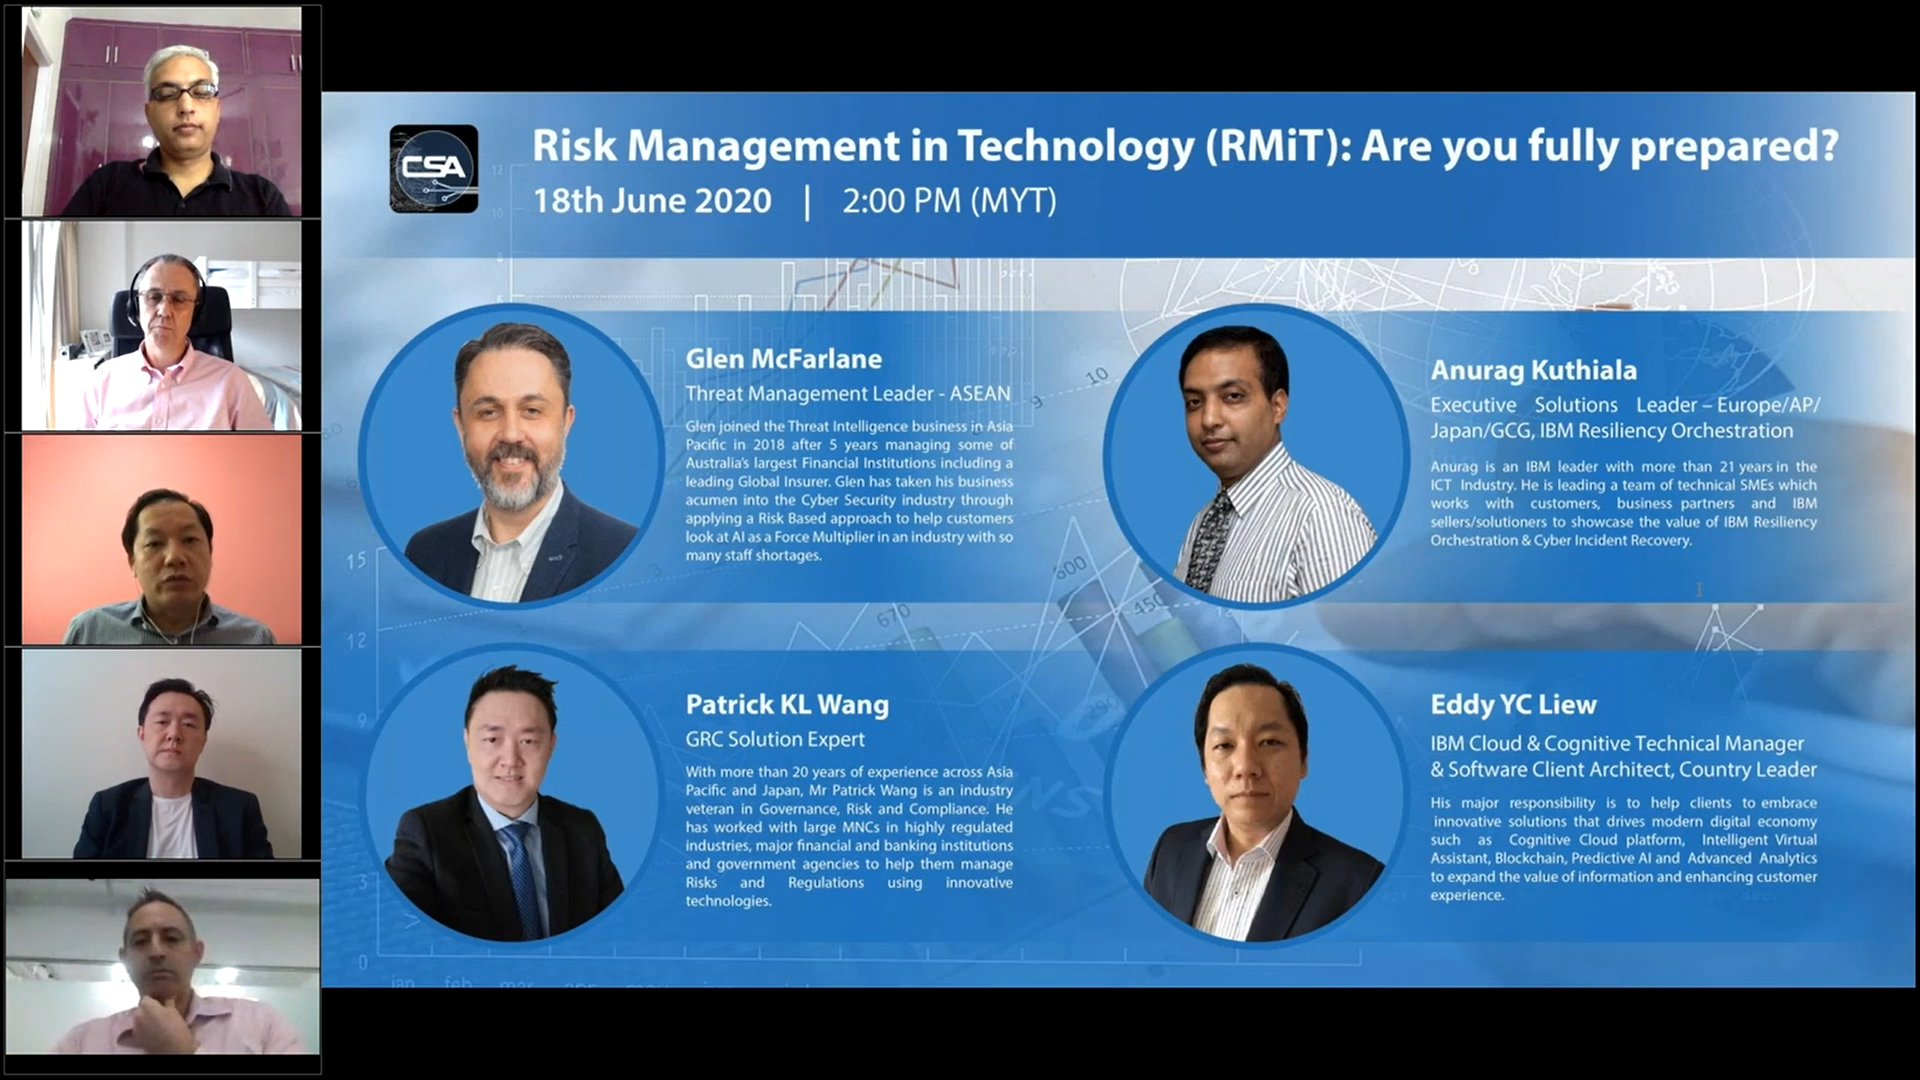 IBM RMiT Webinar - Are You Fully Prepared? - Attended.